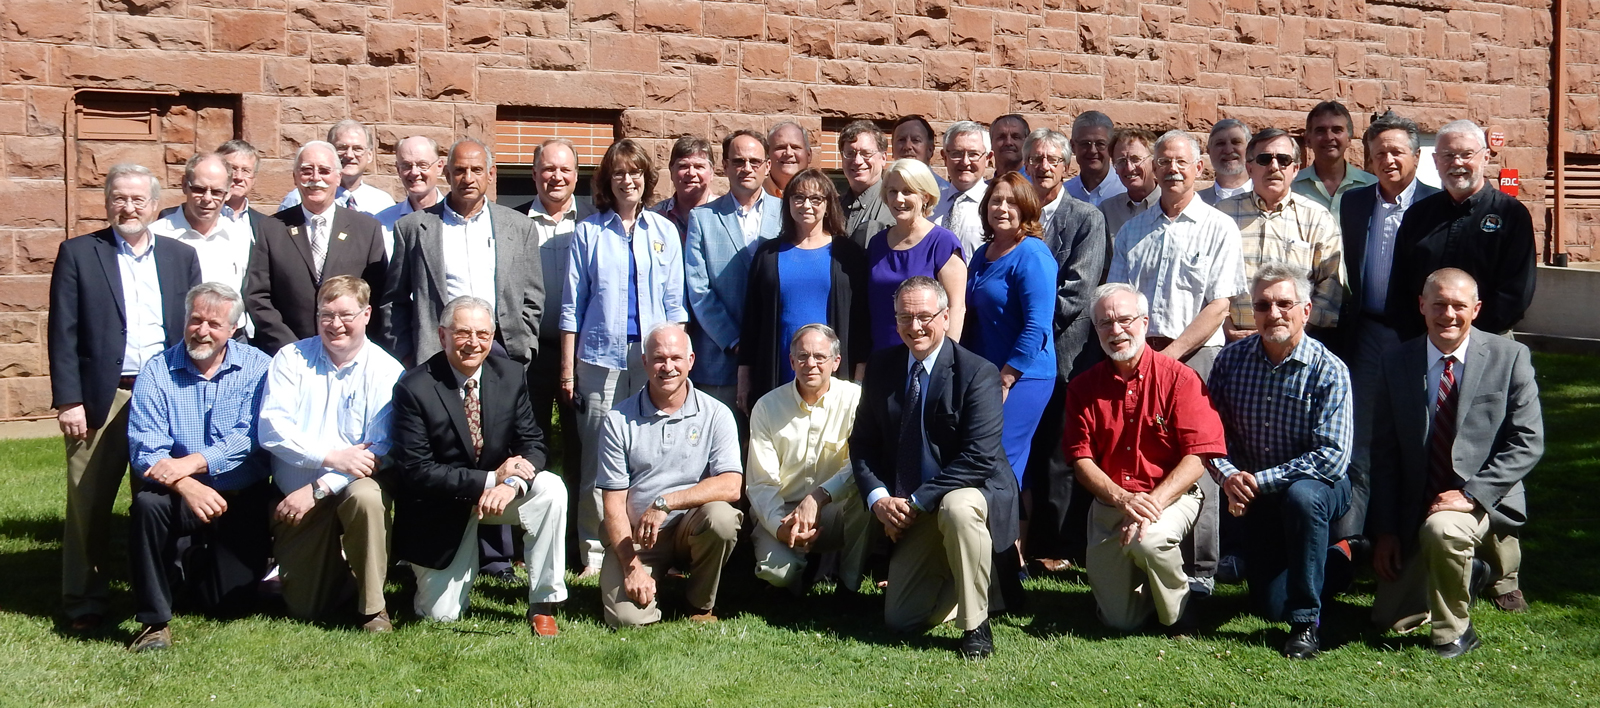 AASG -- State geologists in Flagstaff